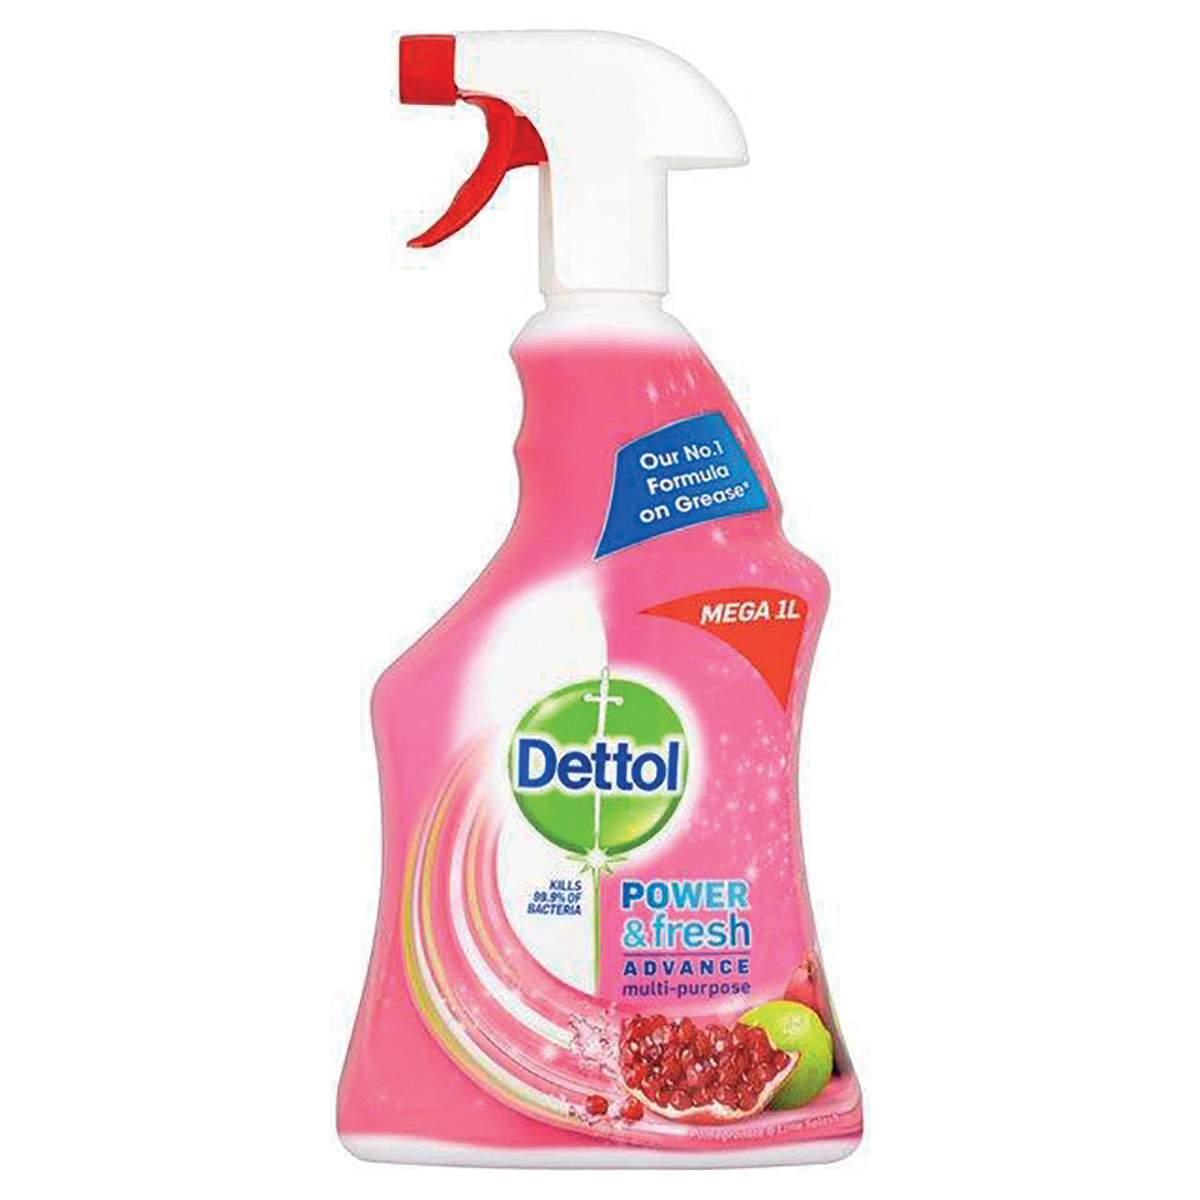 Image for Dettol Power Fresh Pomegranate Antibacterial Multi Purpose Cleaner Trigger Spray 1 Litre Ref 3007938